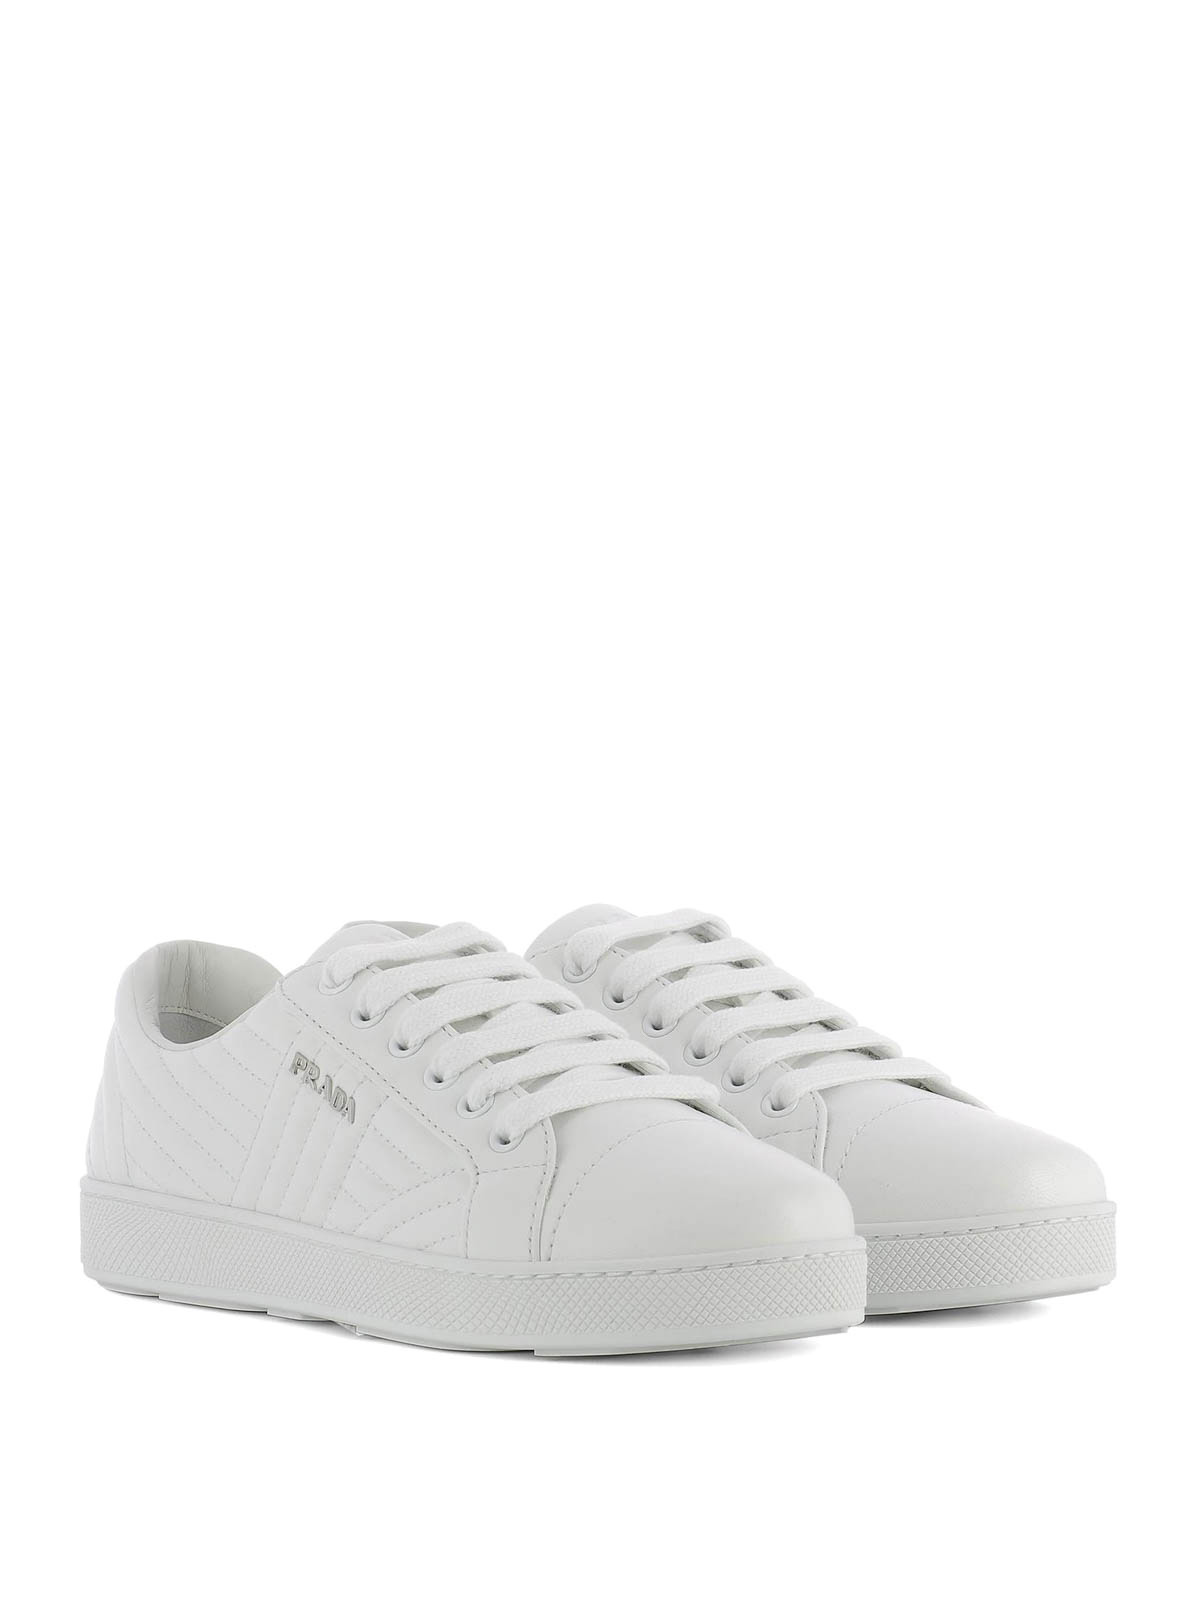 Prada - Quilted leather white sneakers